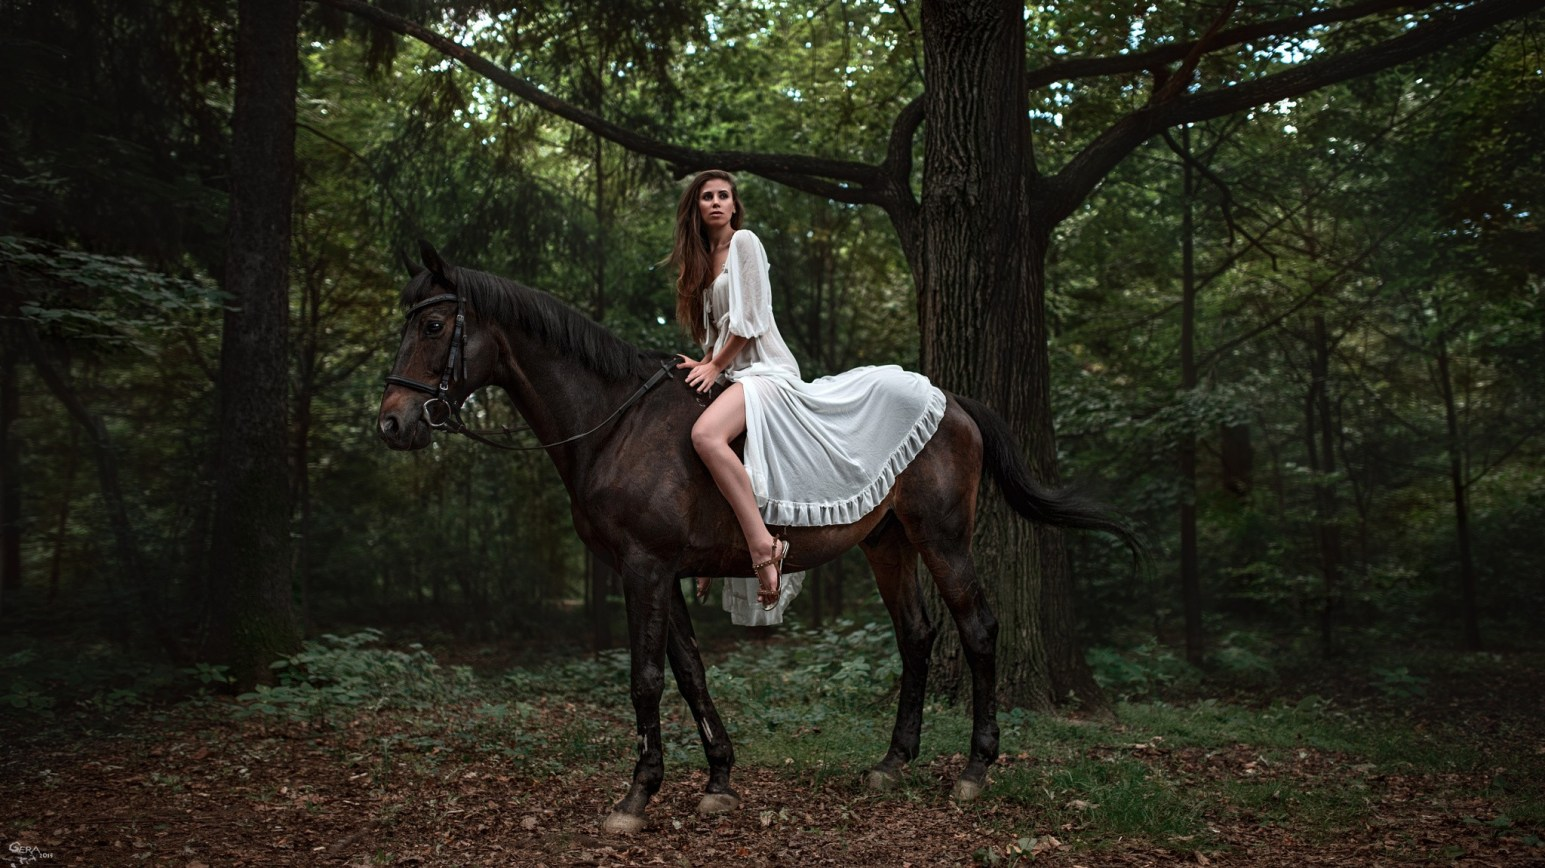 model with horse image